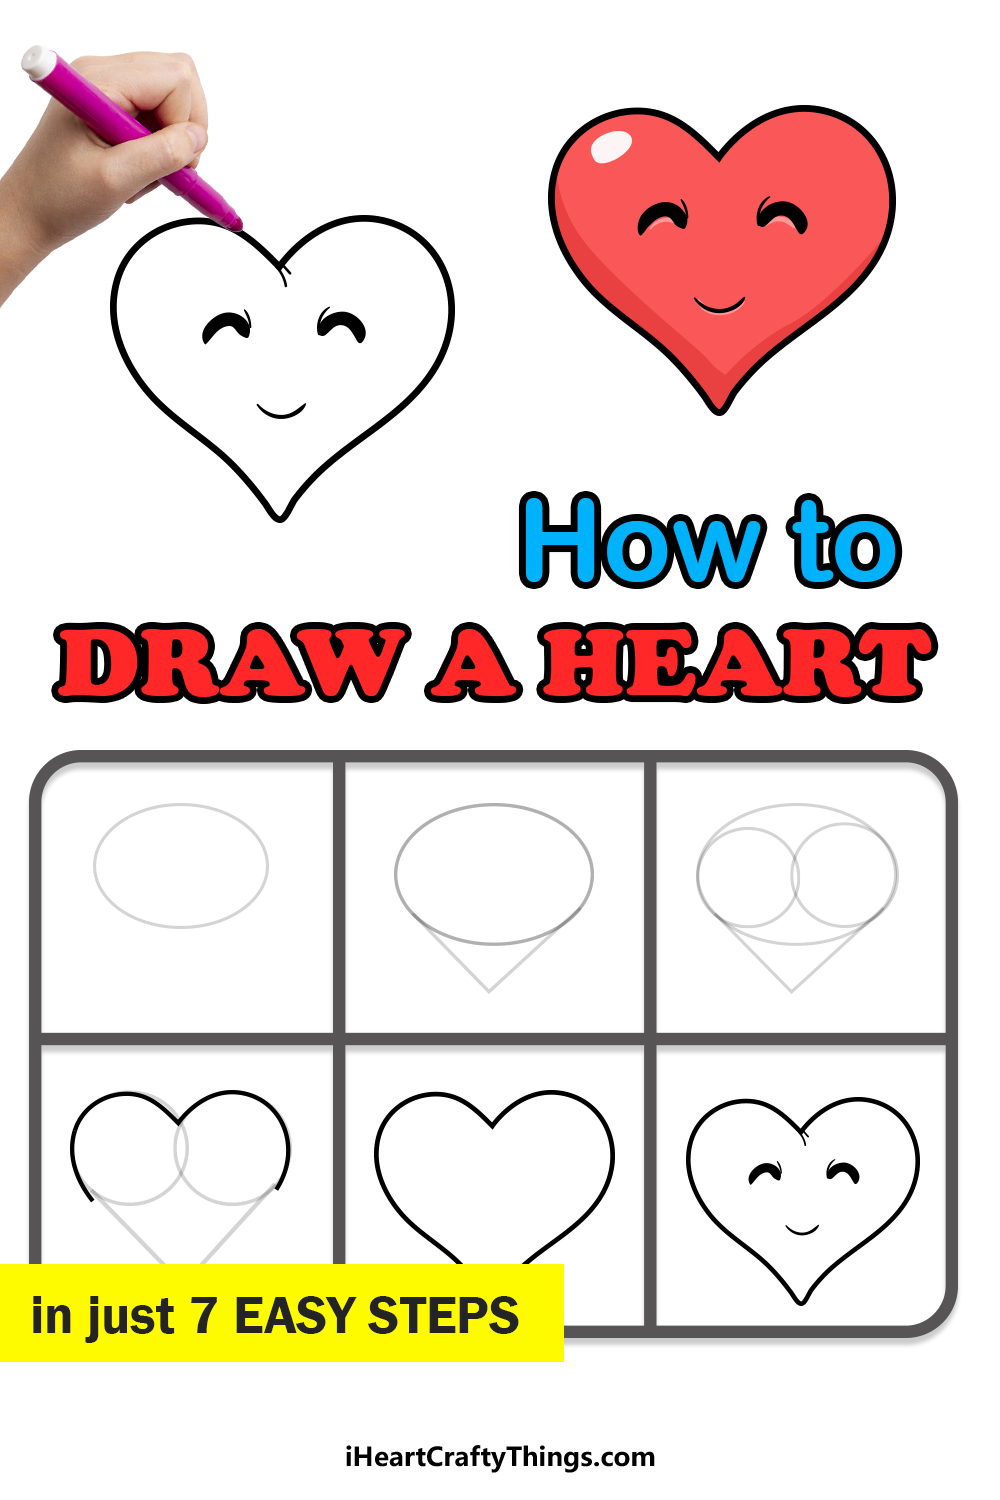 how to draw a heart in 7 easy steps